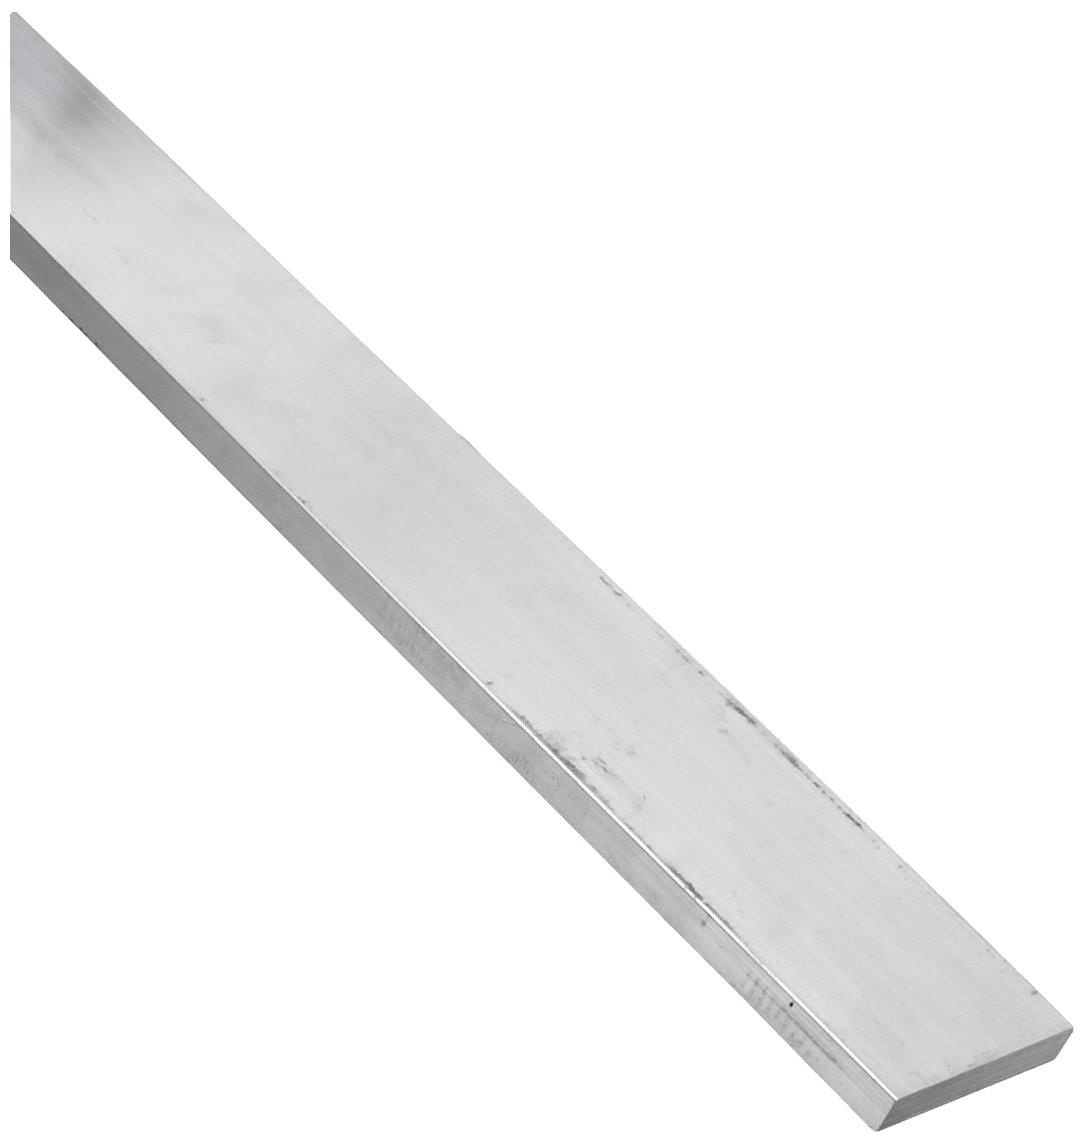 6061 Aluminum Rectangular Bar, Unpolished (Mill) Finish, 1' Thickness, 3/16' Width, 72' Length 1 Thickness 3/16 Width 72 Length Small Parts Inc 6061.188 X 1.000FLTL6.000